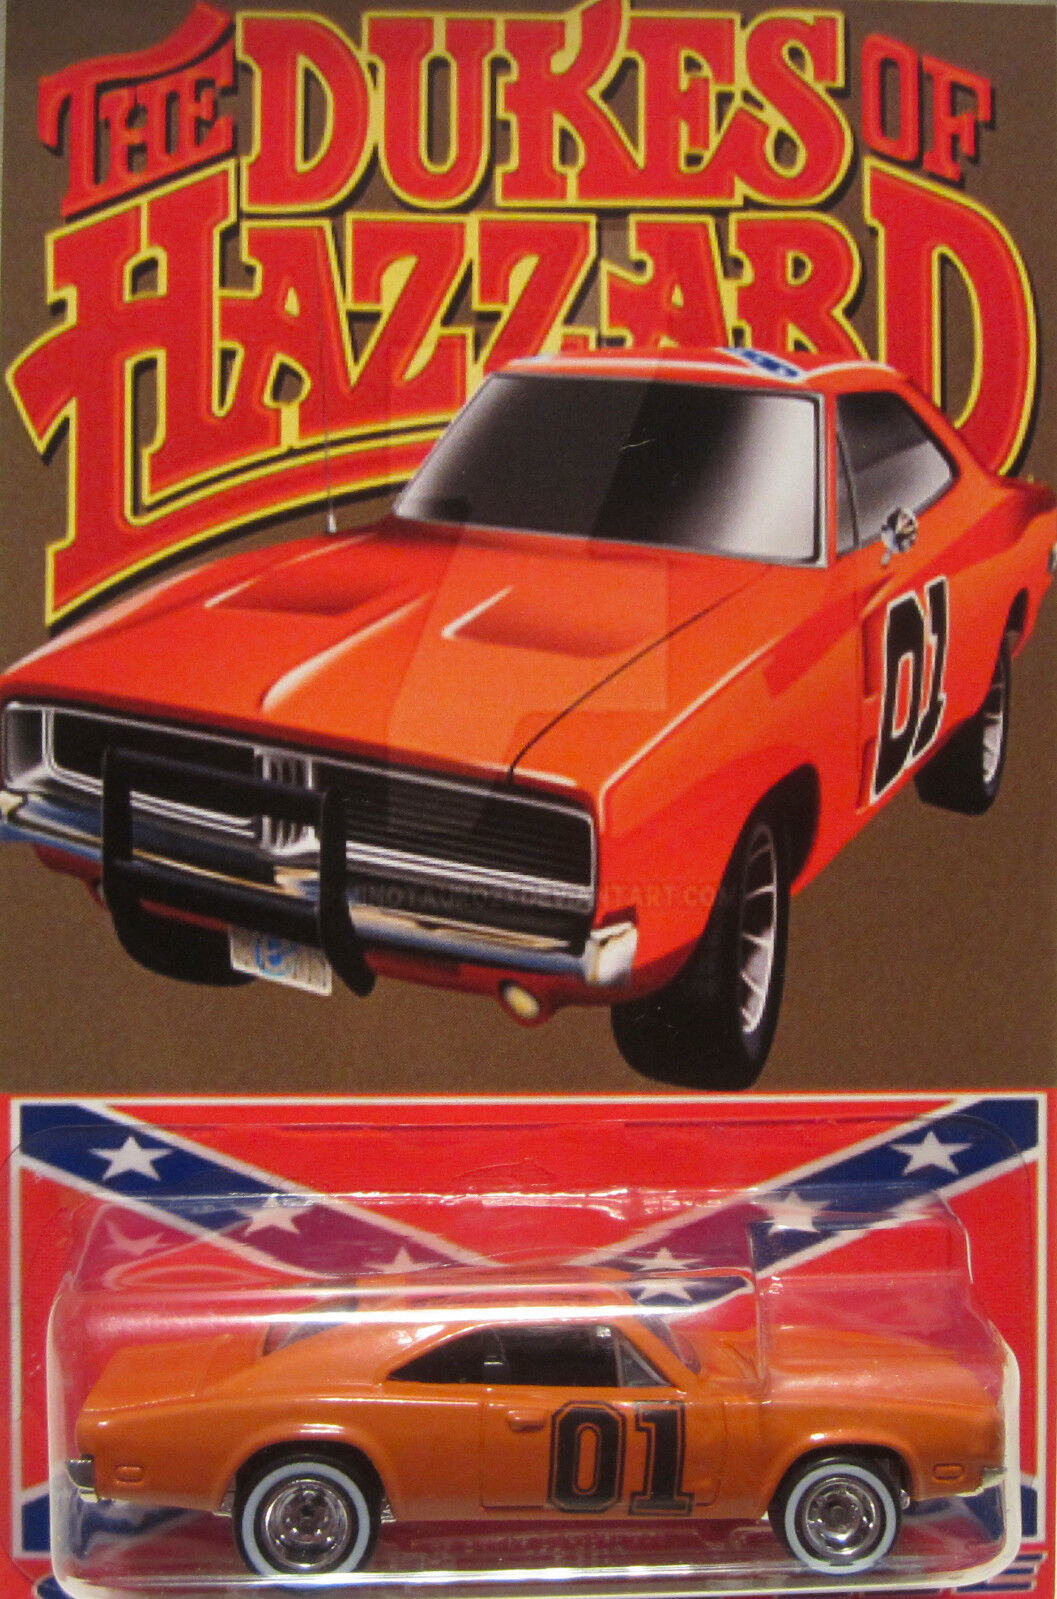 Hot Wheels su Misura '69 Dodge Charger Generale Lee Hazzard Real Rider